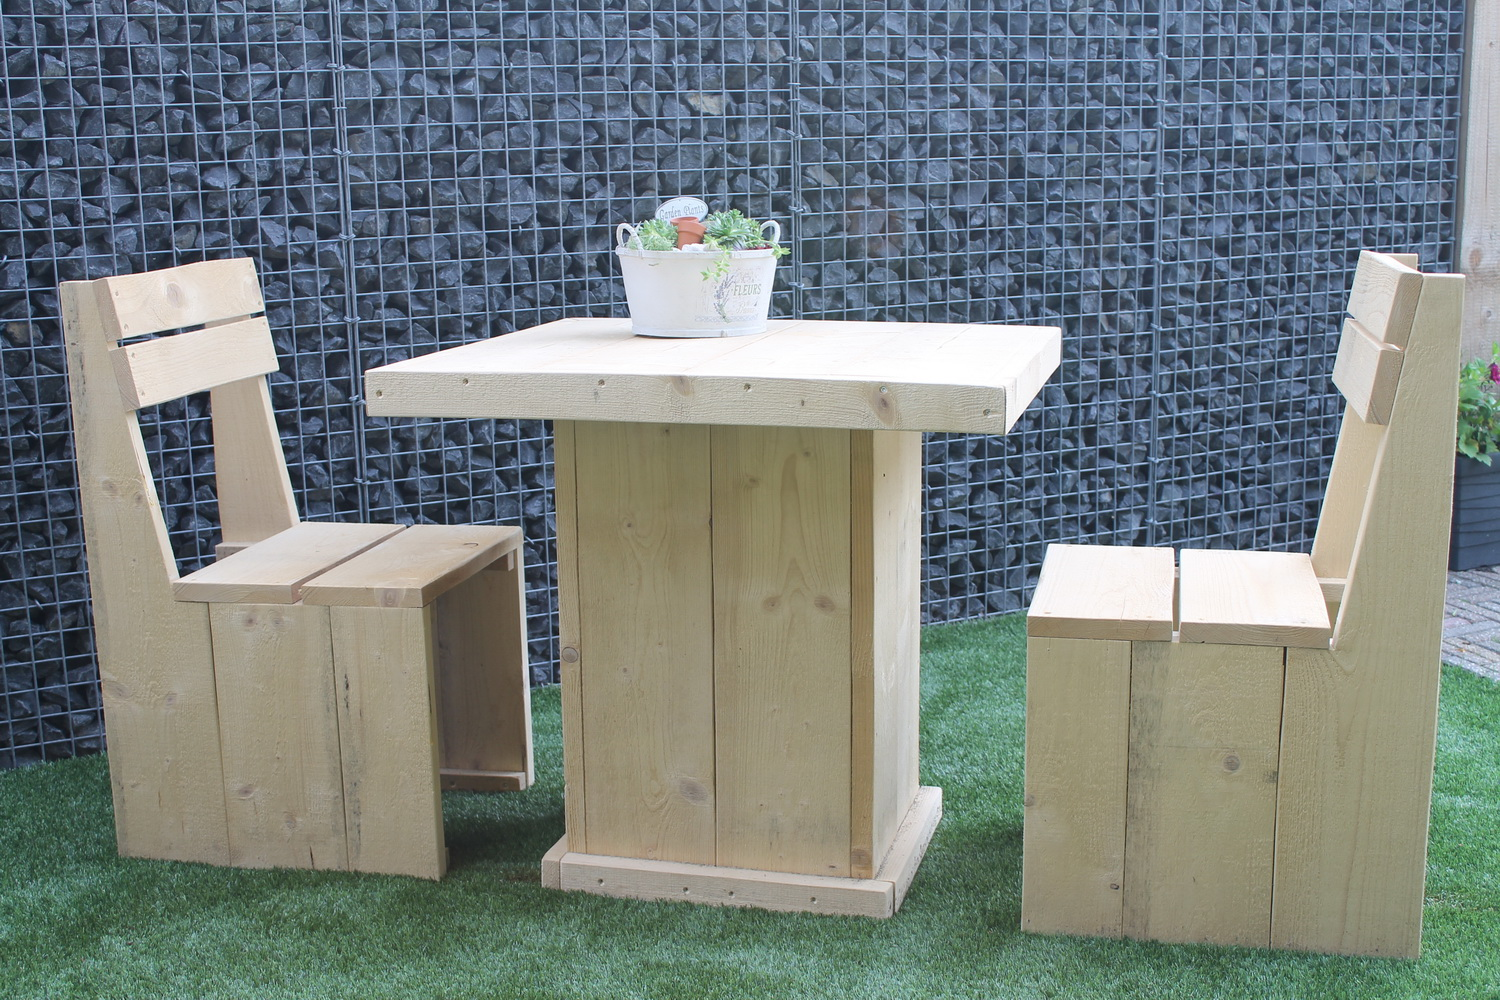 gartenbank klappbar lidl 200614 eine interessante idee f r die gestaltung einer. Black Bedroom Furniture Sets. Home Design Ideas